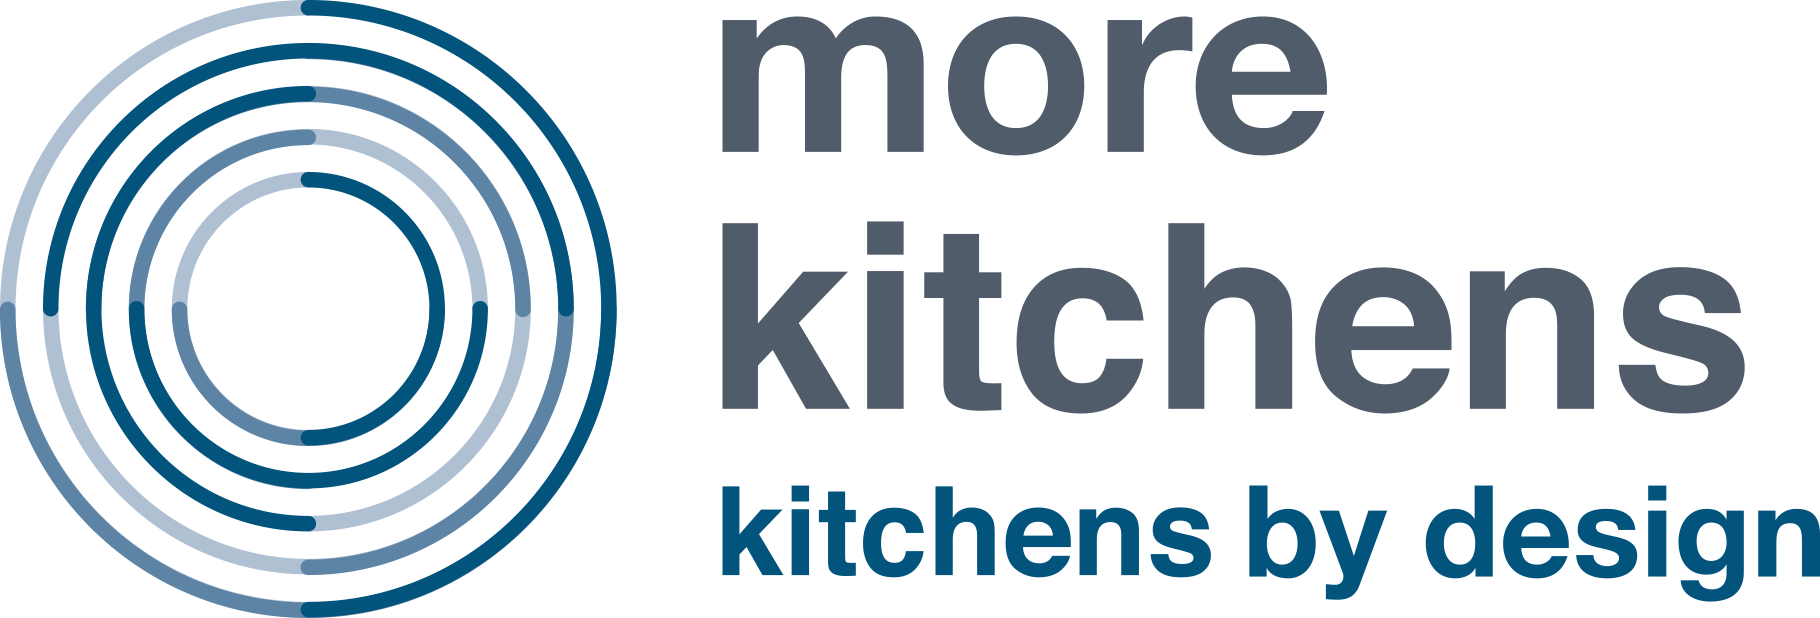 Passmore Group the Leeds Home Improvement Specialist - More Kitchens